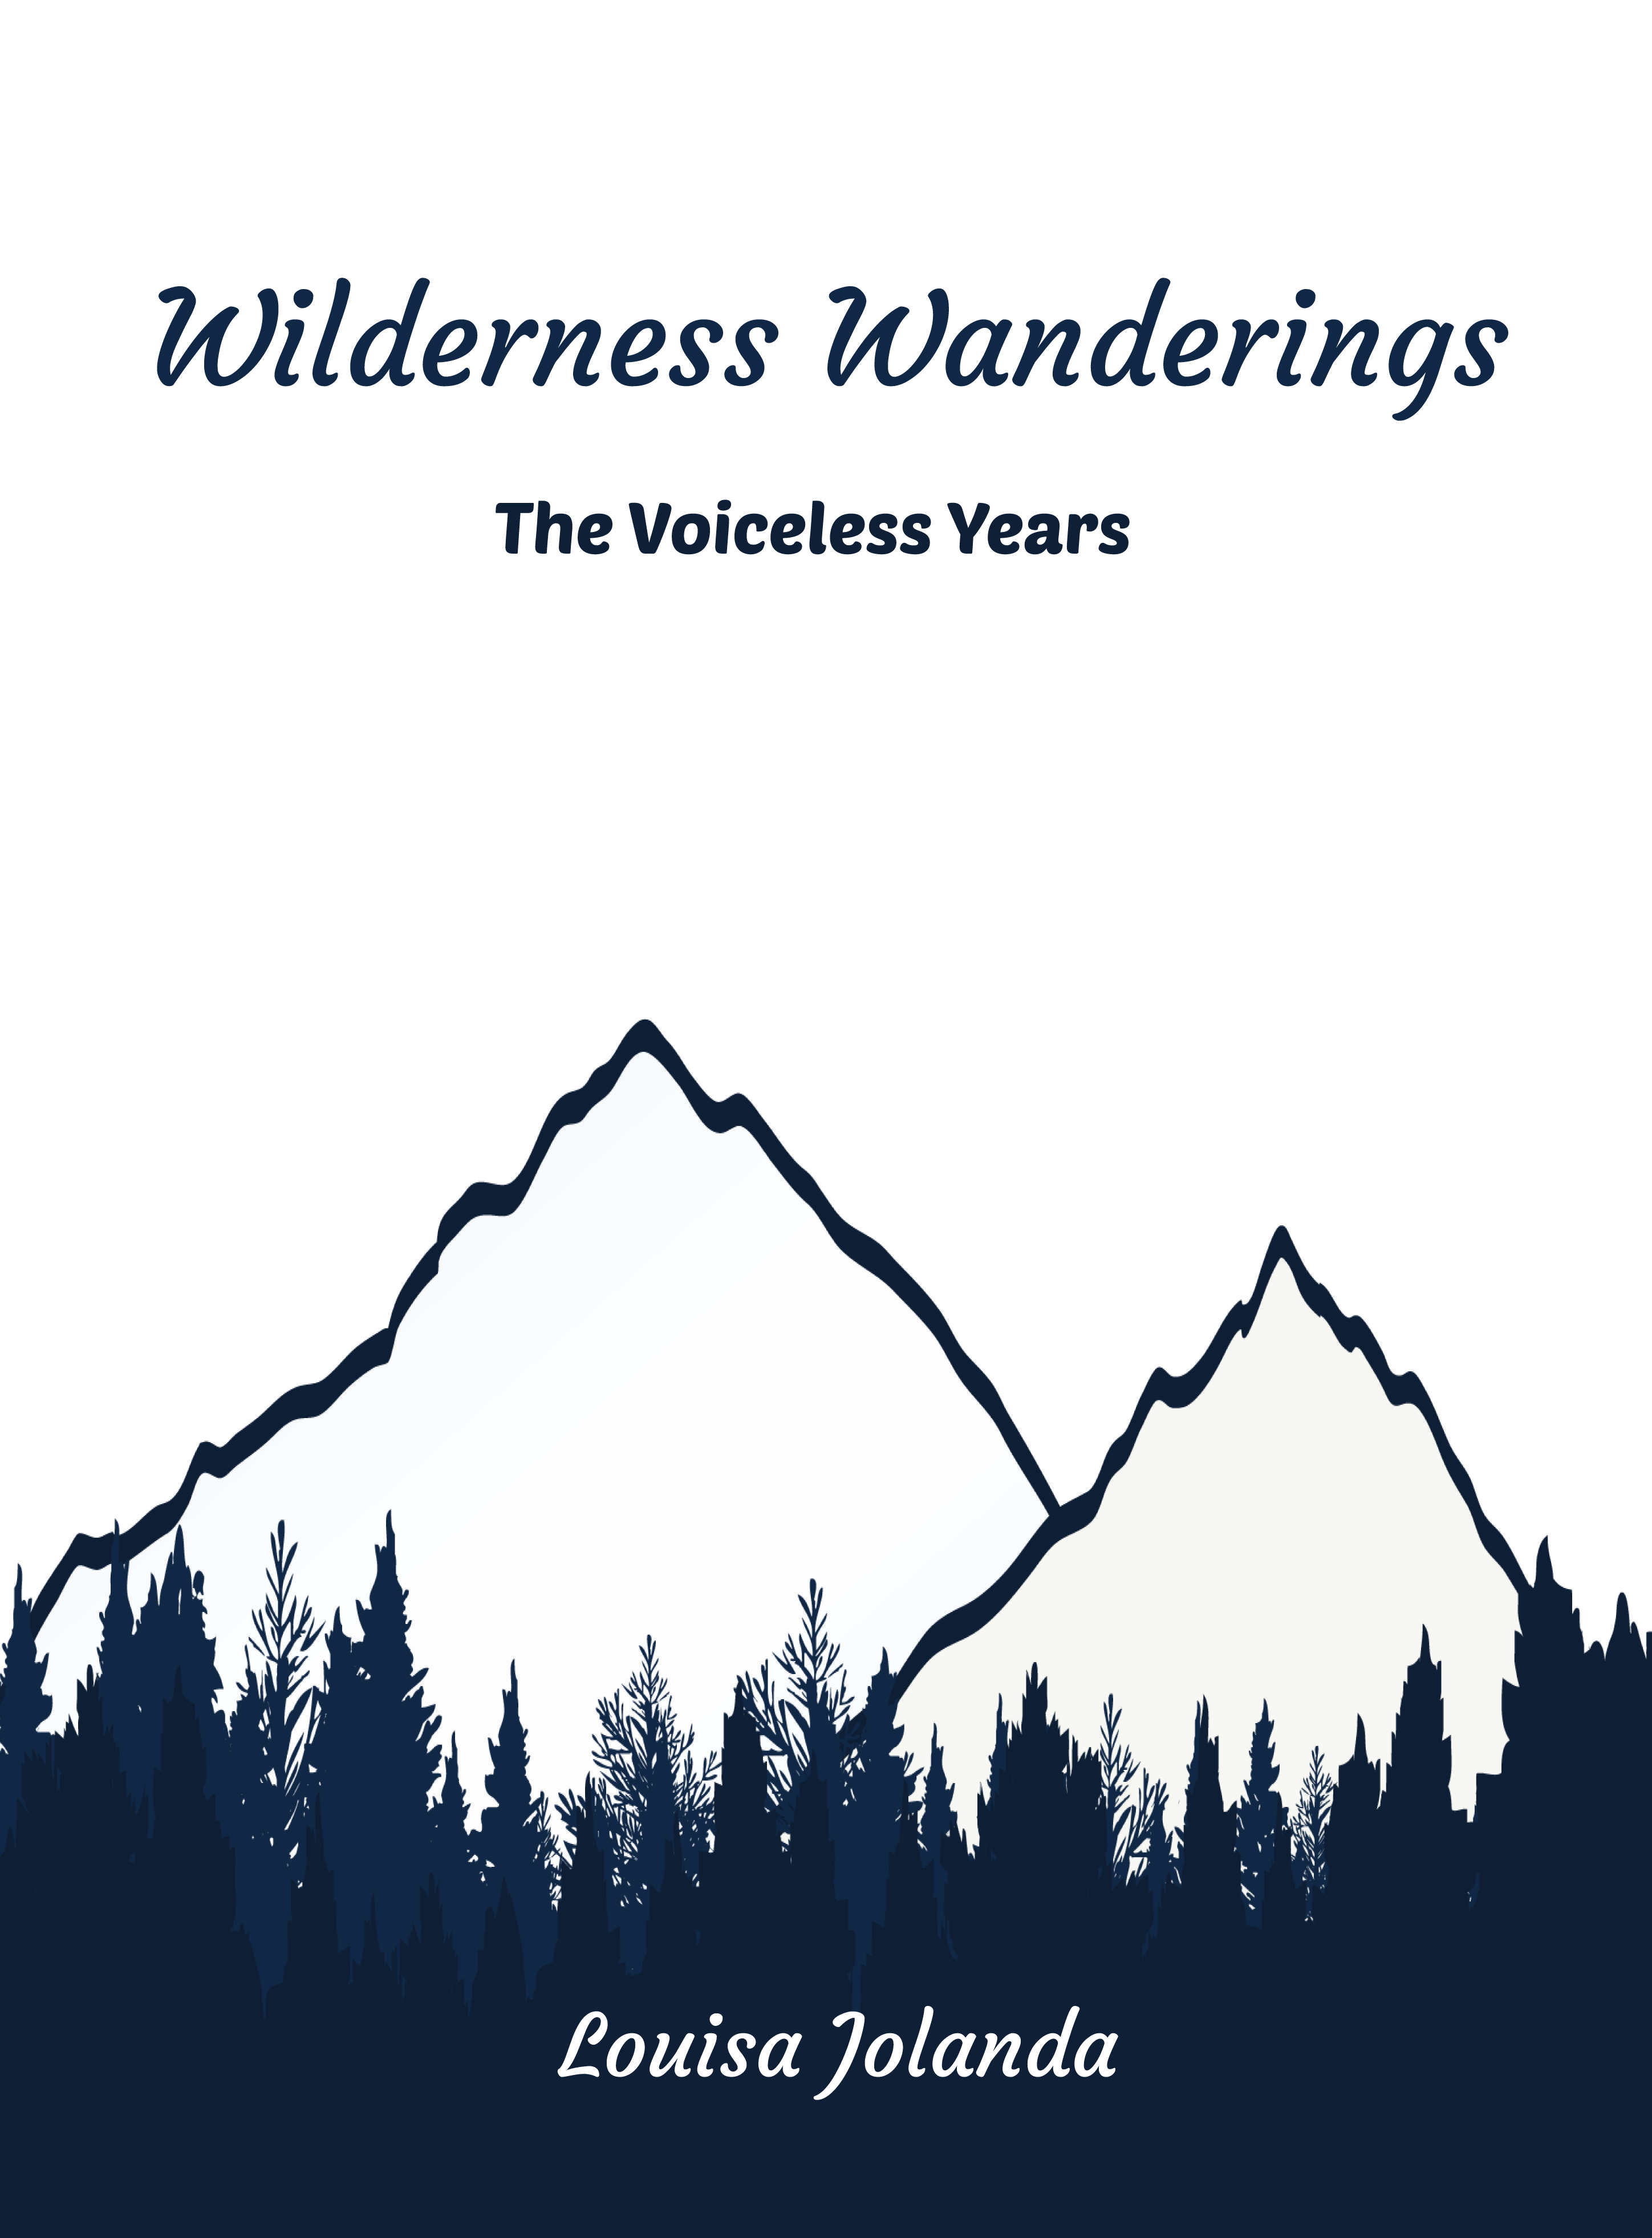 Wilderness Wanderings - The Voiceless Years